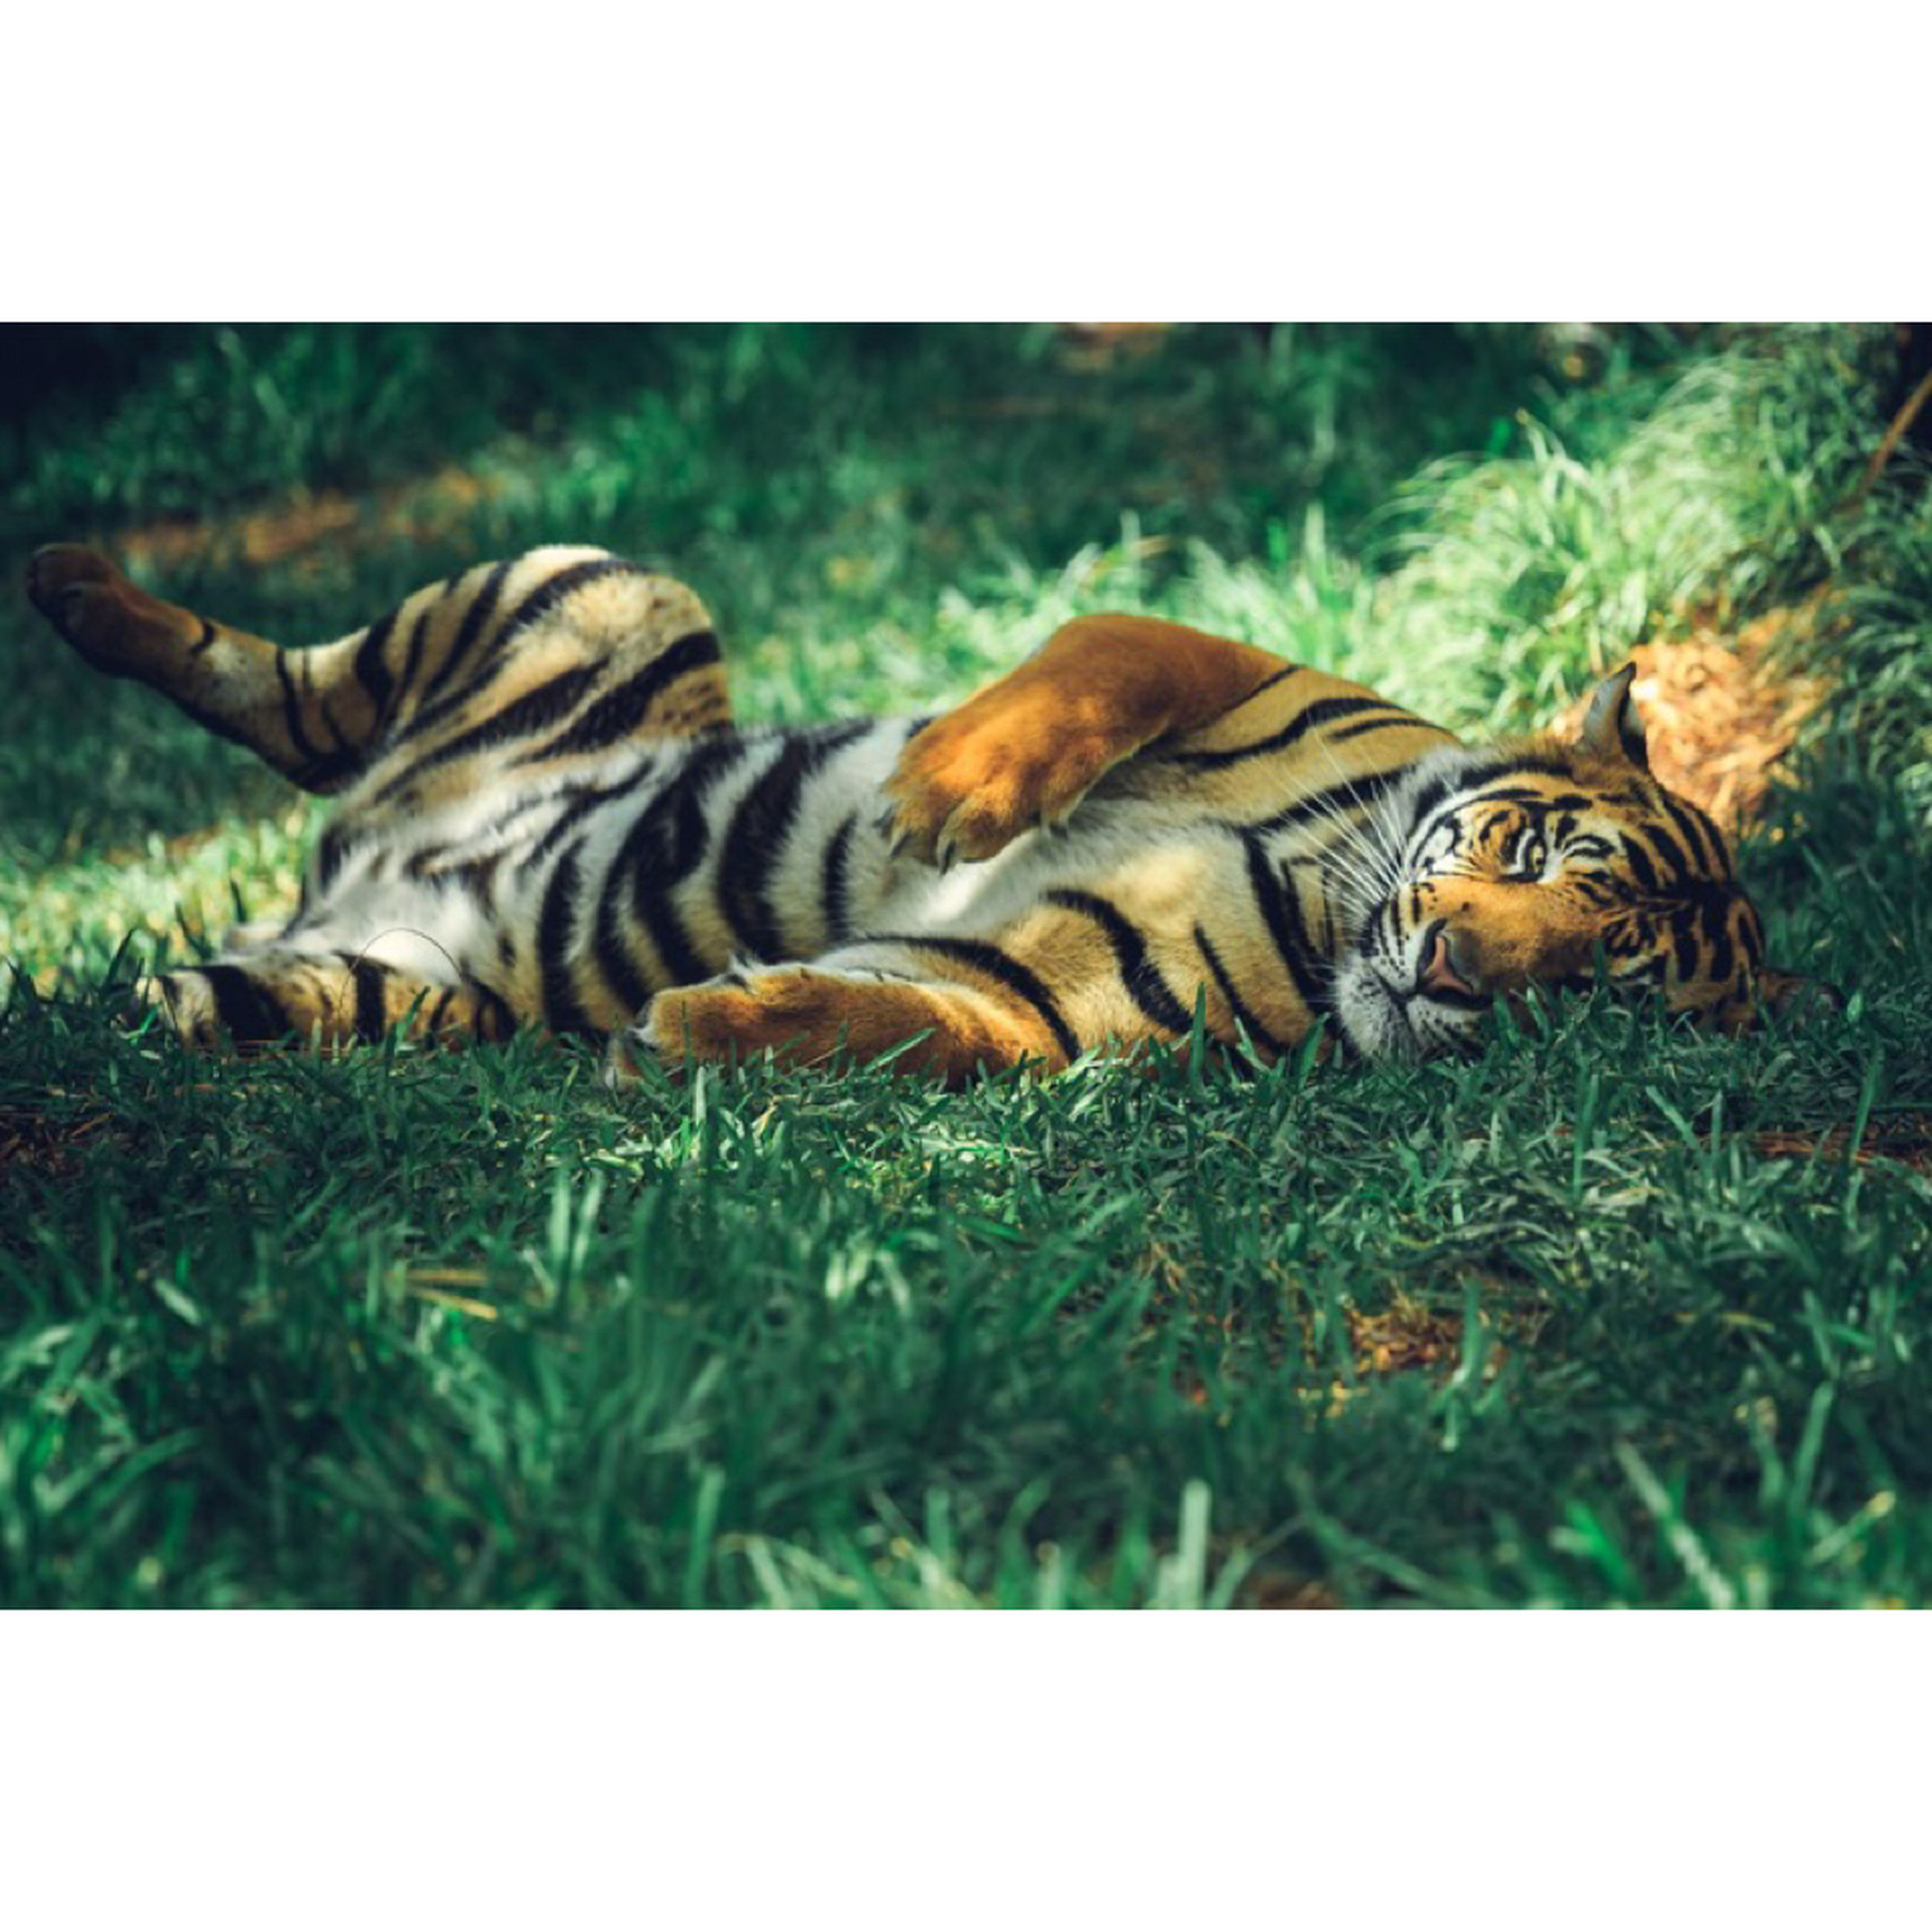 transfer print, animal themes, auto post production filter, grass, wildlife, animals in the wild, field, one animal, grassy, green color, mammal, two animals, nature, outdoors, day, togetherness, close-up, animal markings, full length, side view